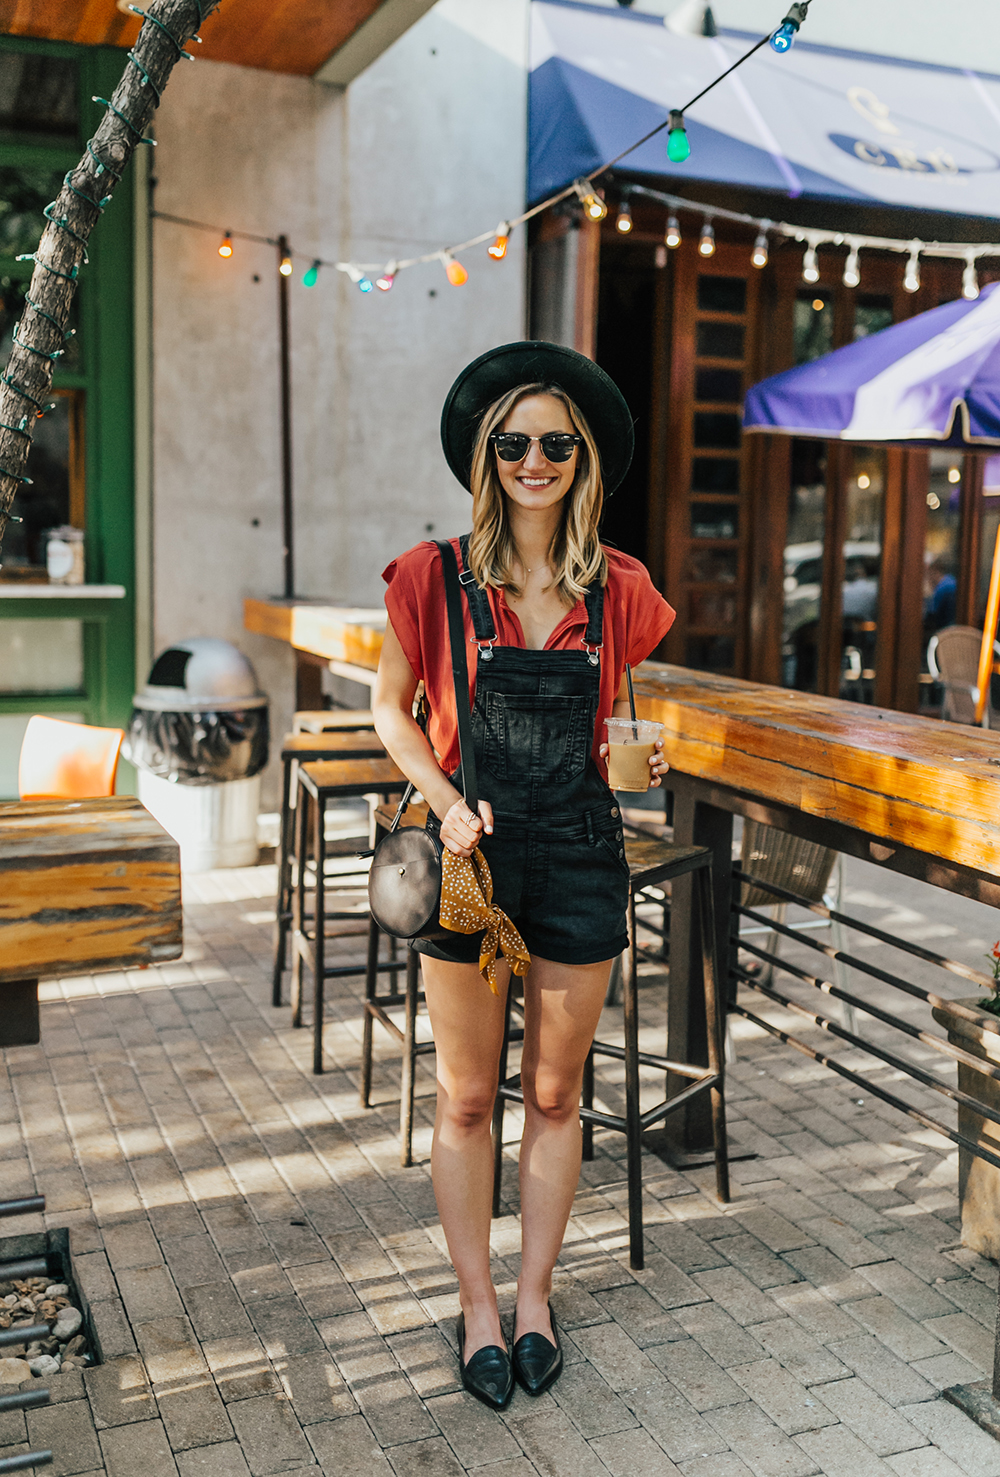 livvyland-blog-olivia-watson-black-short-overalls-abercrombie-everlane-black-pointed-toe-flats-summer-outfit-jos-coffee-second-street-austin-texas-fashion-blogger-6